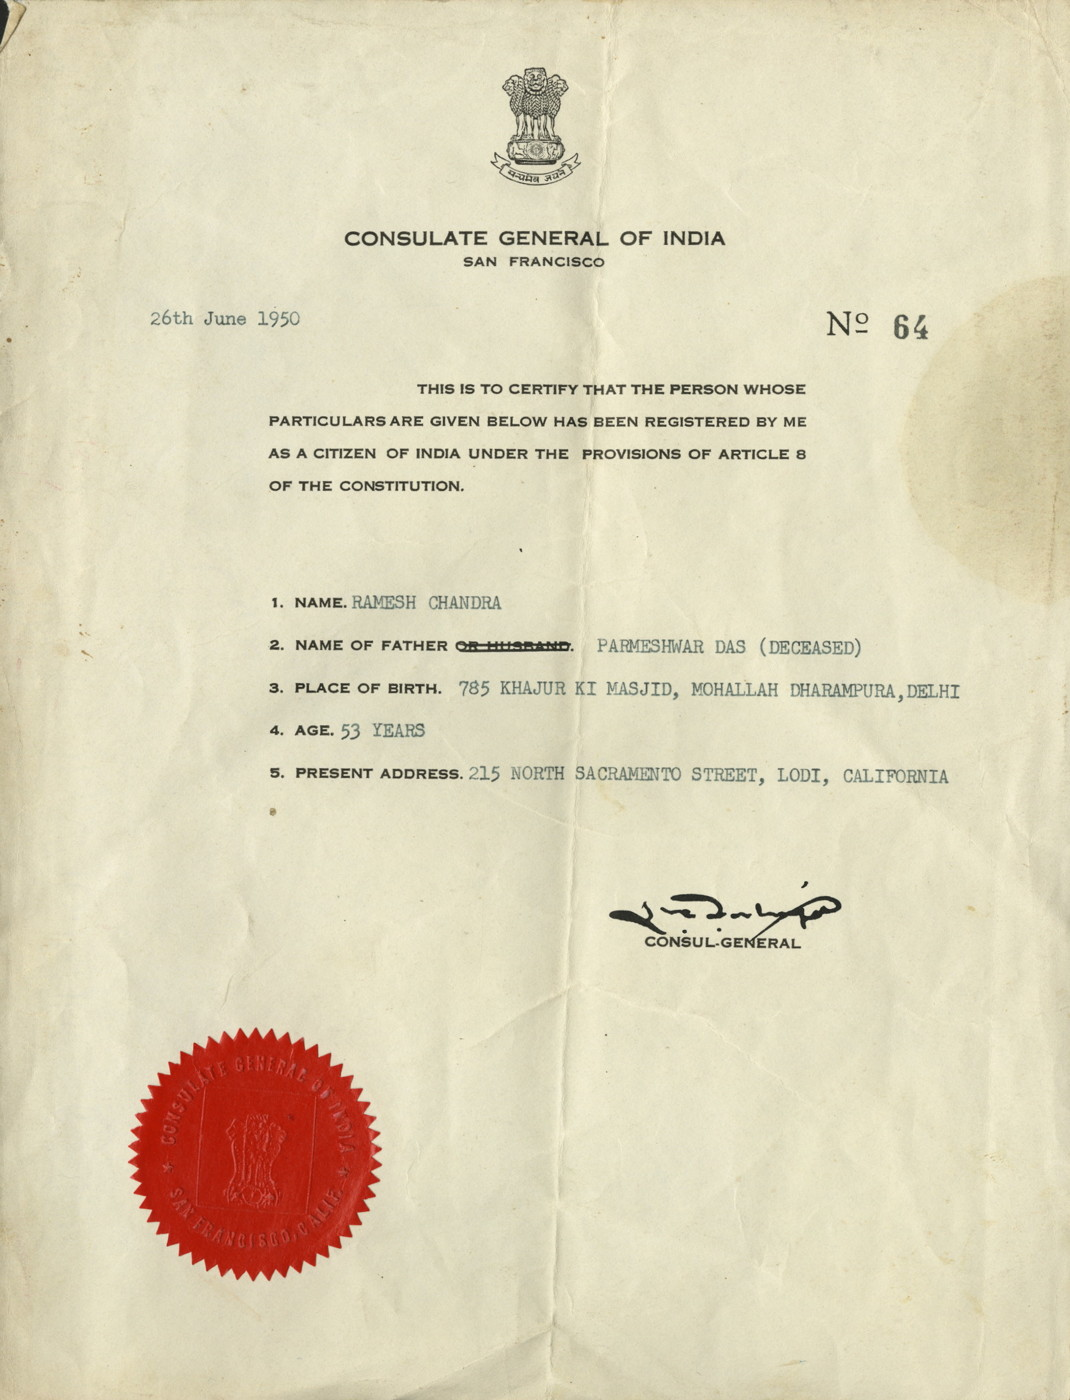 Certification Of Indian Citizenship For Ramesh Chandra South Asian